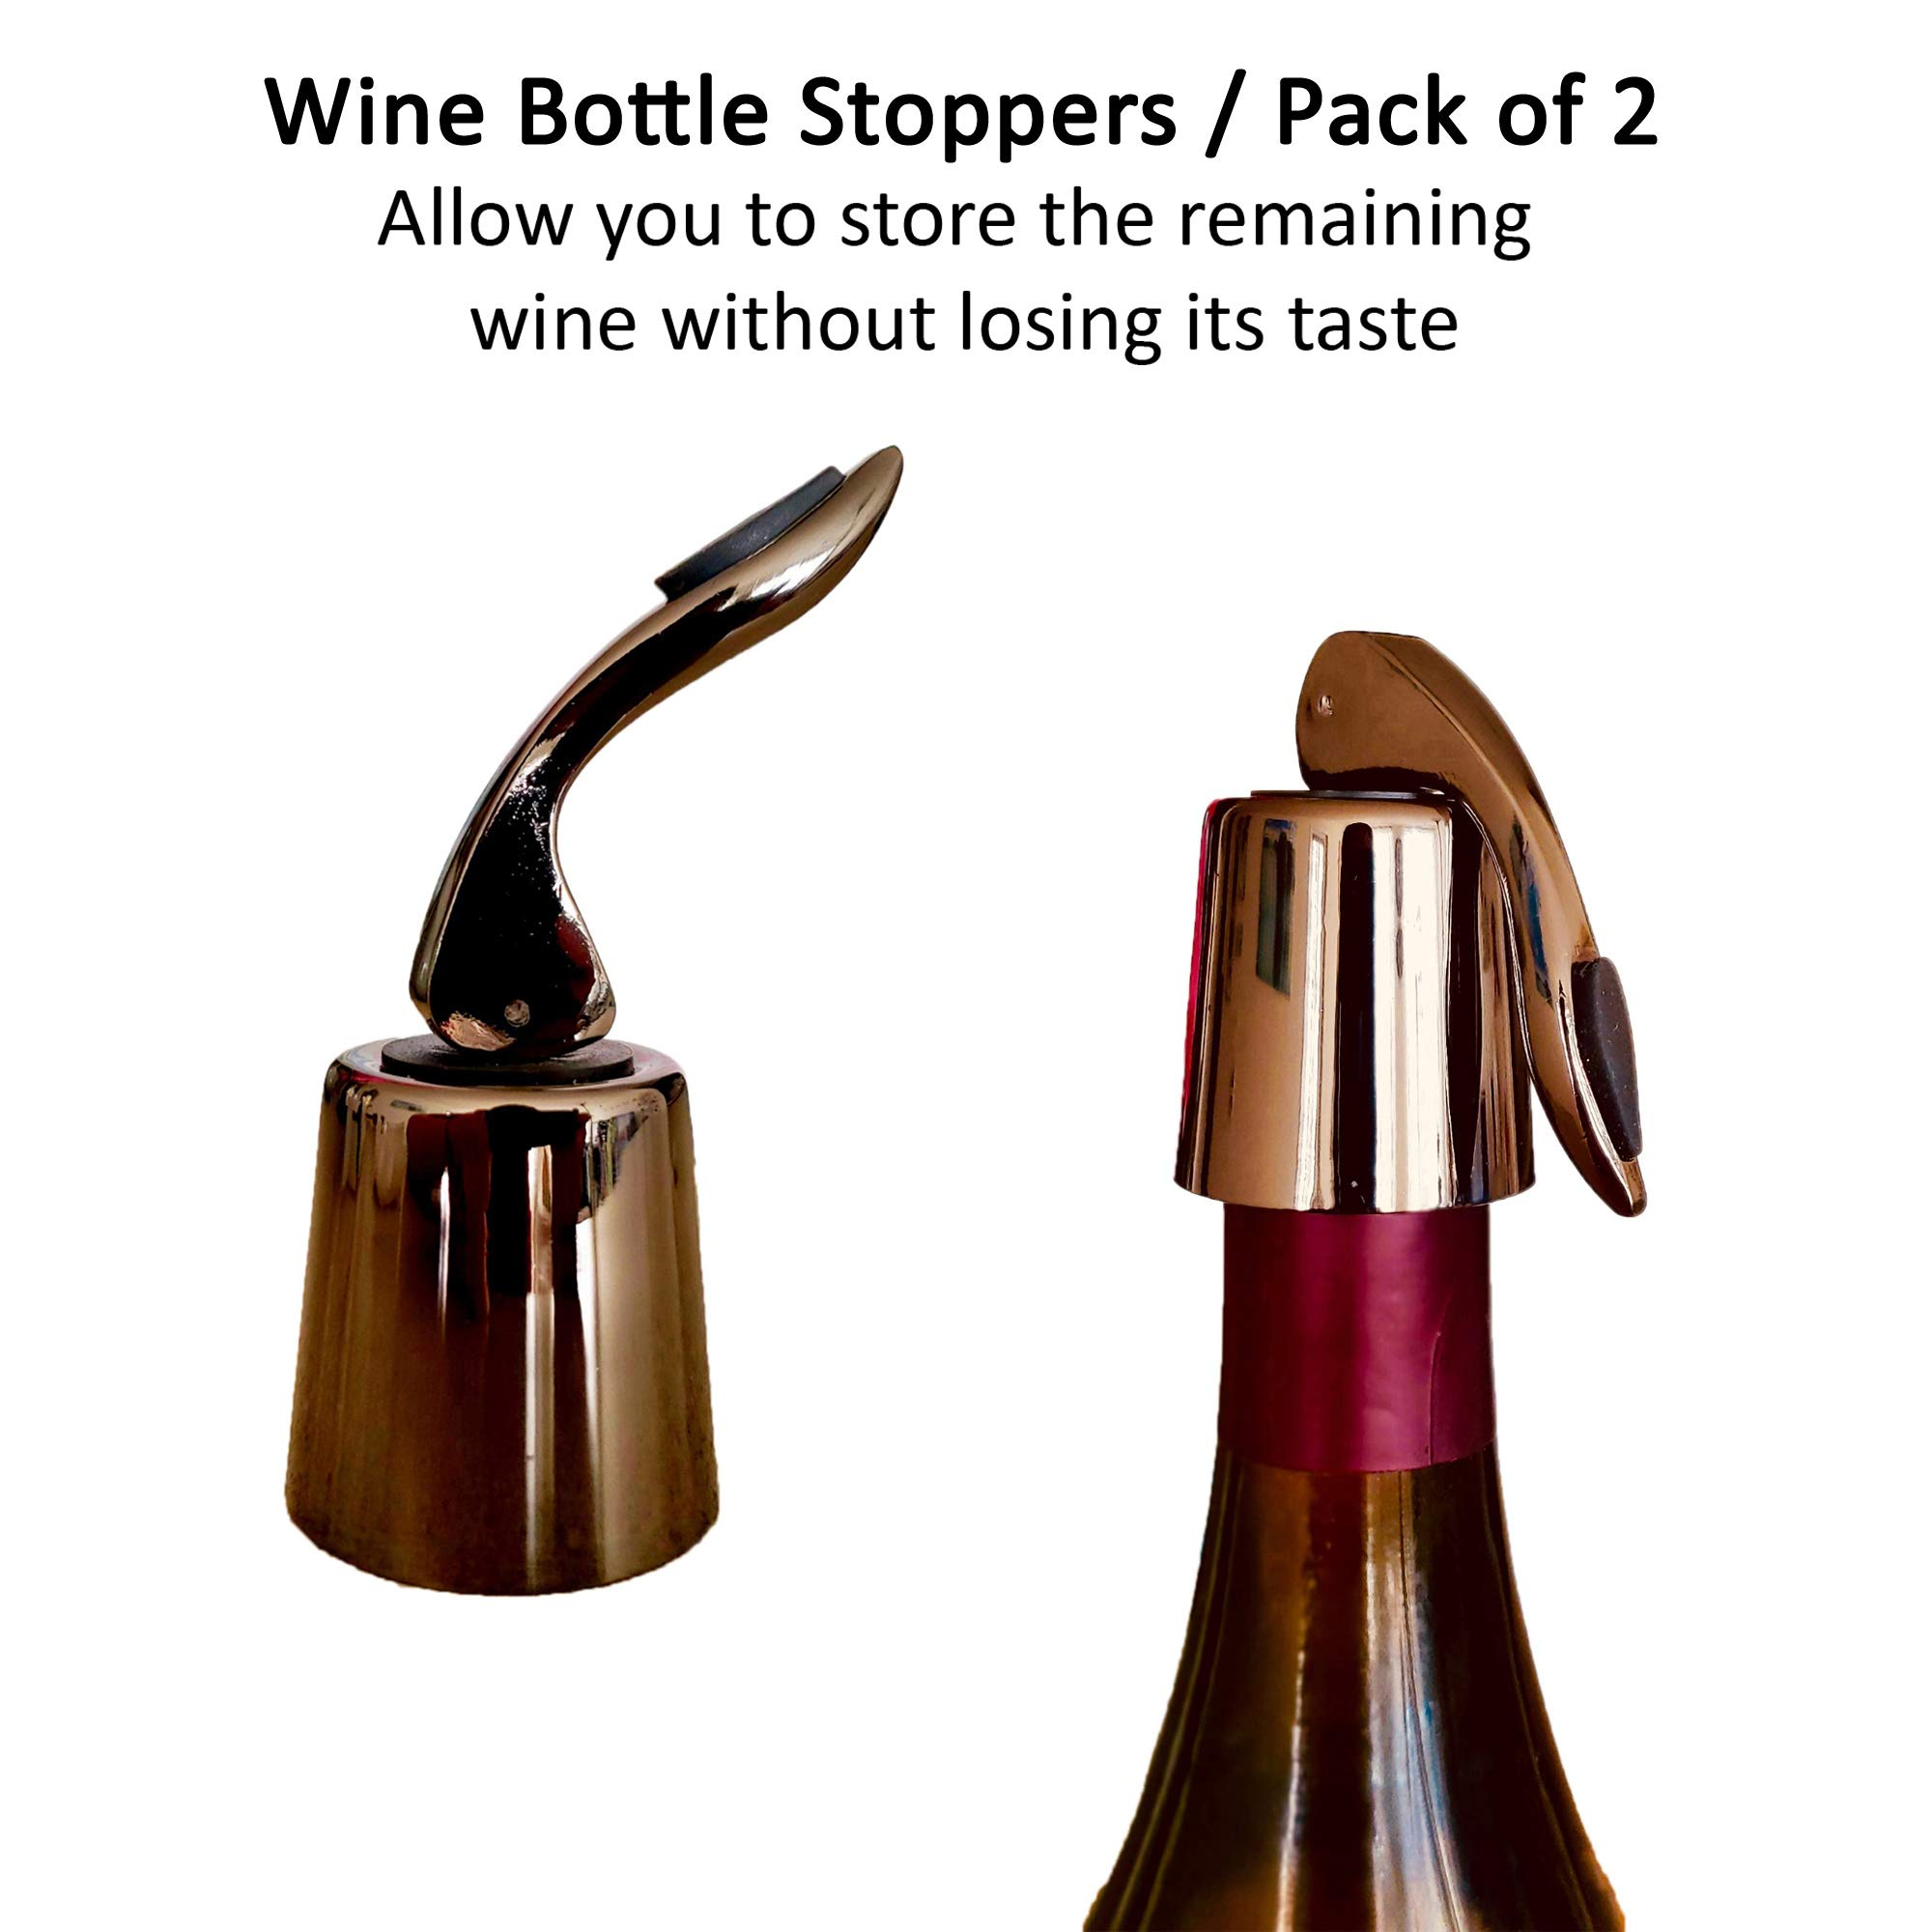 VNSG Deluxe Wine Set⎮Wine Accessories⎮Set of 5 pieces (Foil Cutter, Wine Bottle Opener/Corkscrew, Wine Aerator, 2 Bottle Stoppers/Wine Preserver)⎮Wine Gift Set⎮House Warming Presents⎮Wine Opener Set